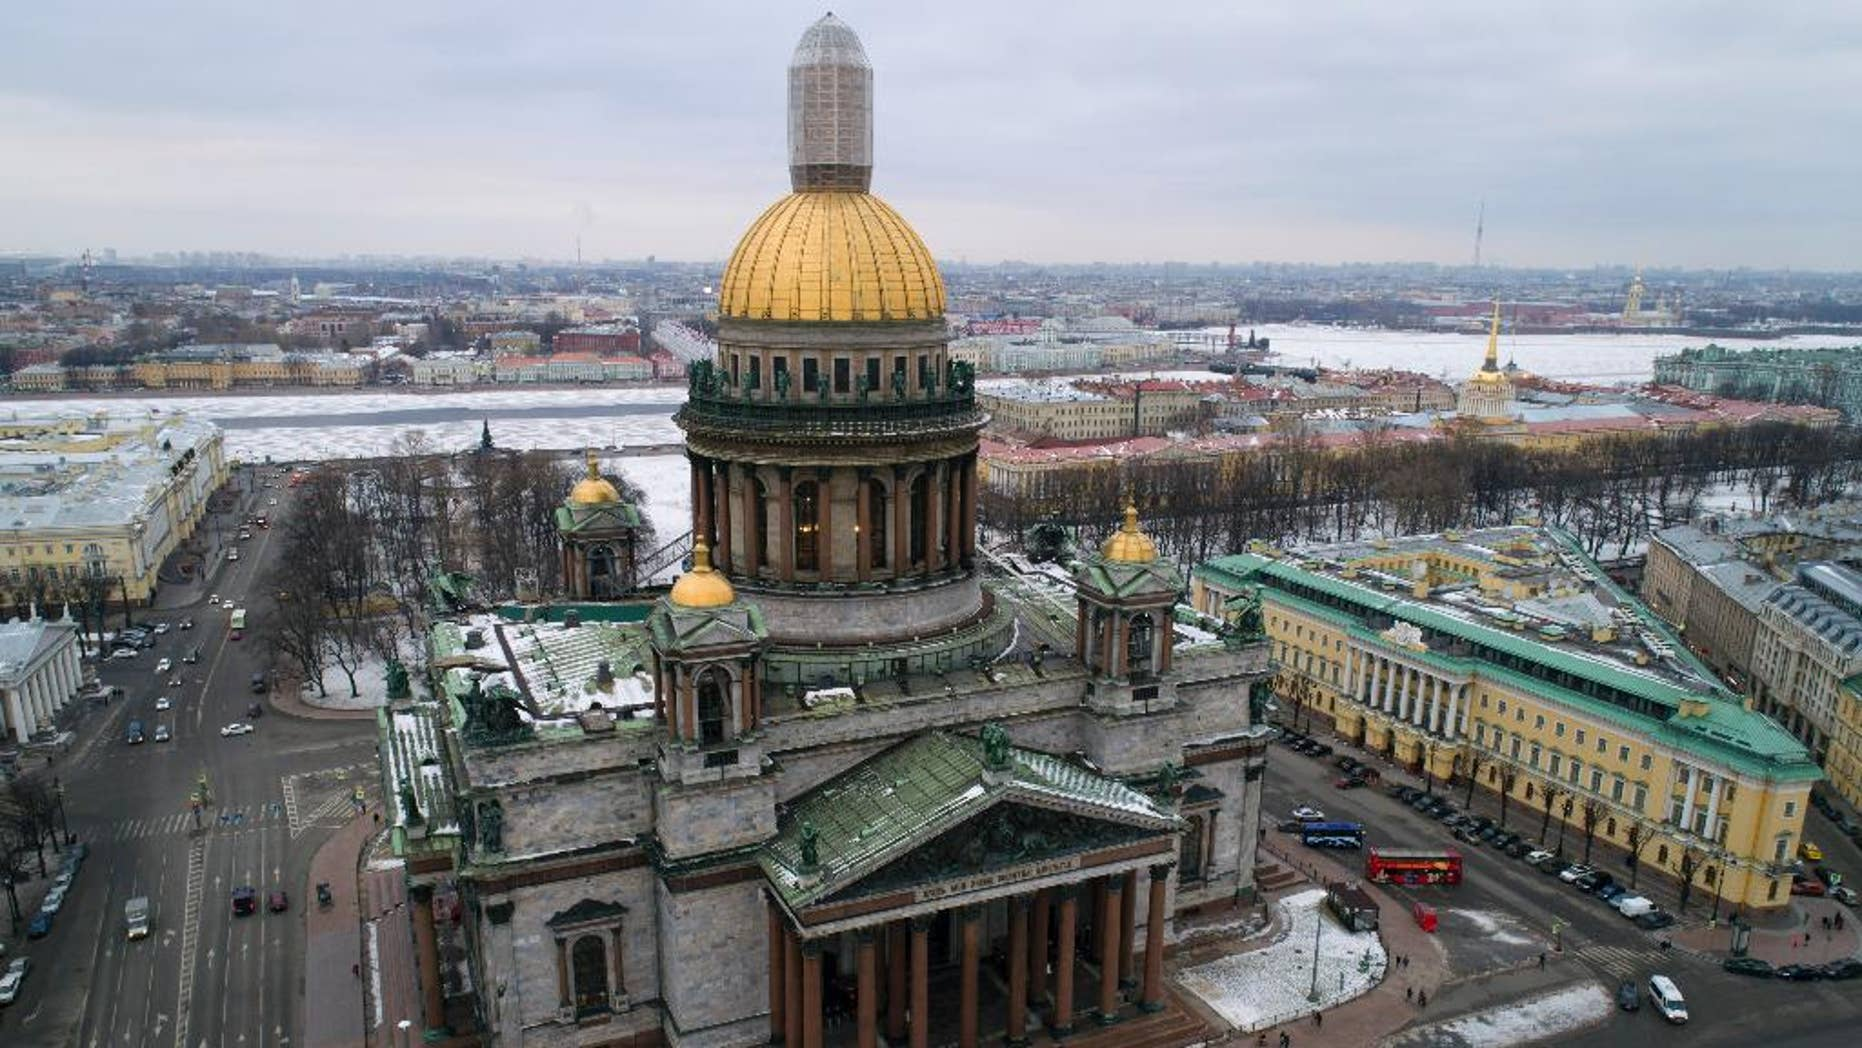 An aerial view of St. Petersburg.